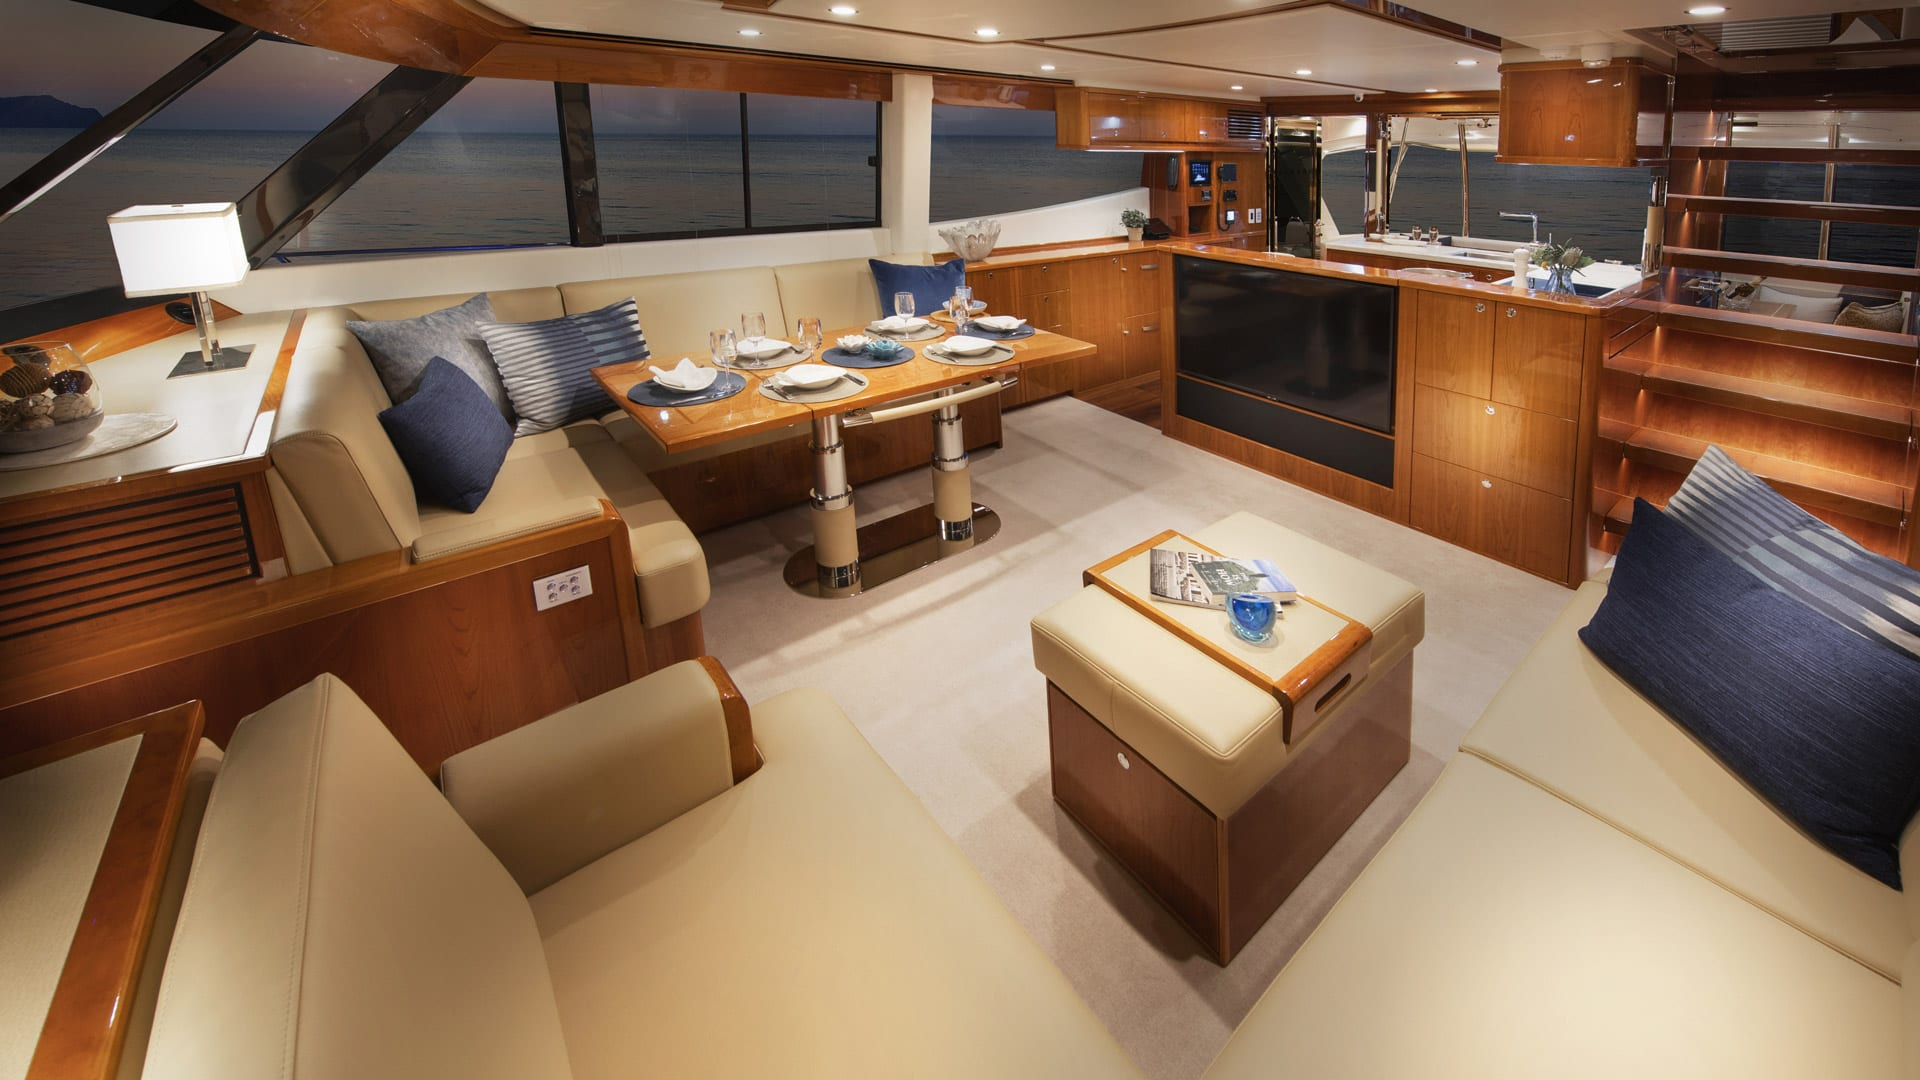 Riviera 72 Sports Motor Yacht Saloon 05 – Gloss Cherrywood Timber Finish